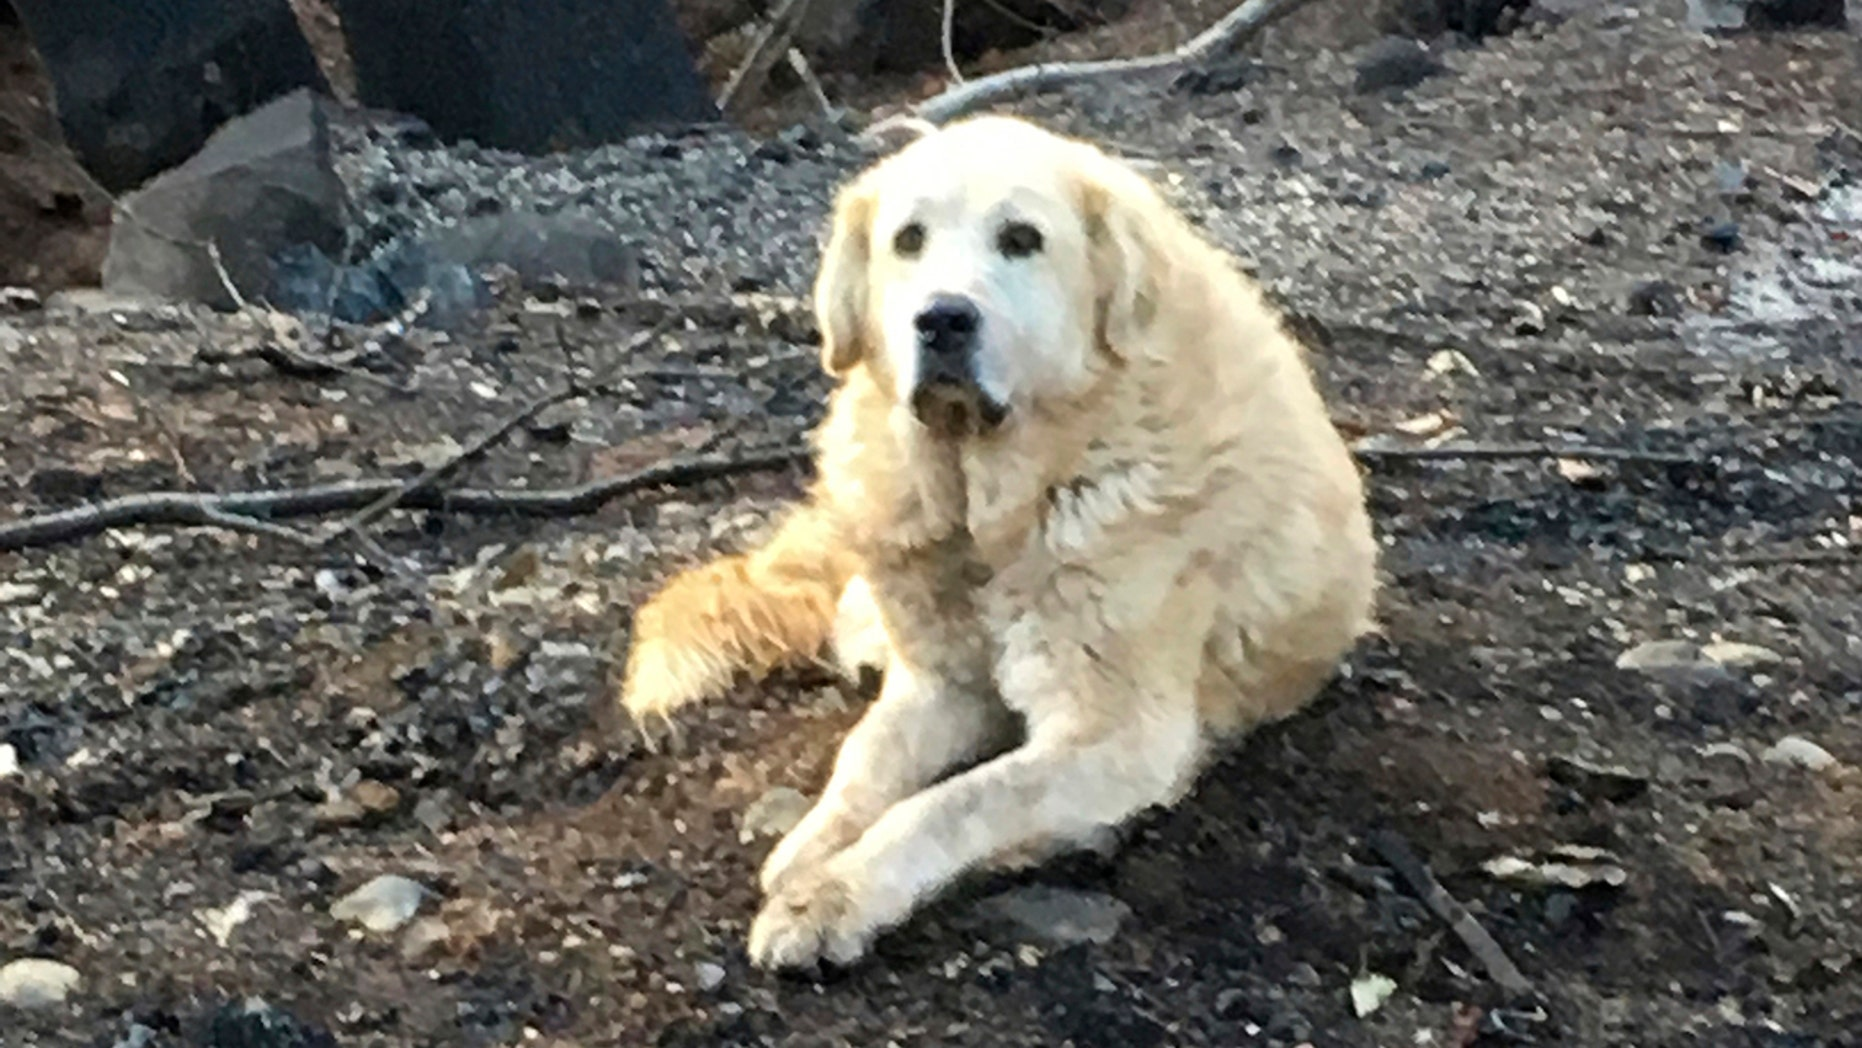 """This Friday Dec. 7, 2018 photo provided Shayla Sullivan shows """"Madison,"""" the Anatolian shepherd dog that apparently guarded his burned home for nearly a month until his owner returned in Paradise, Calif. Sullivan, an animal rescuer, left food and water for Madison during his wait. (Shayla Sullivan via AP)"""